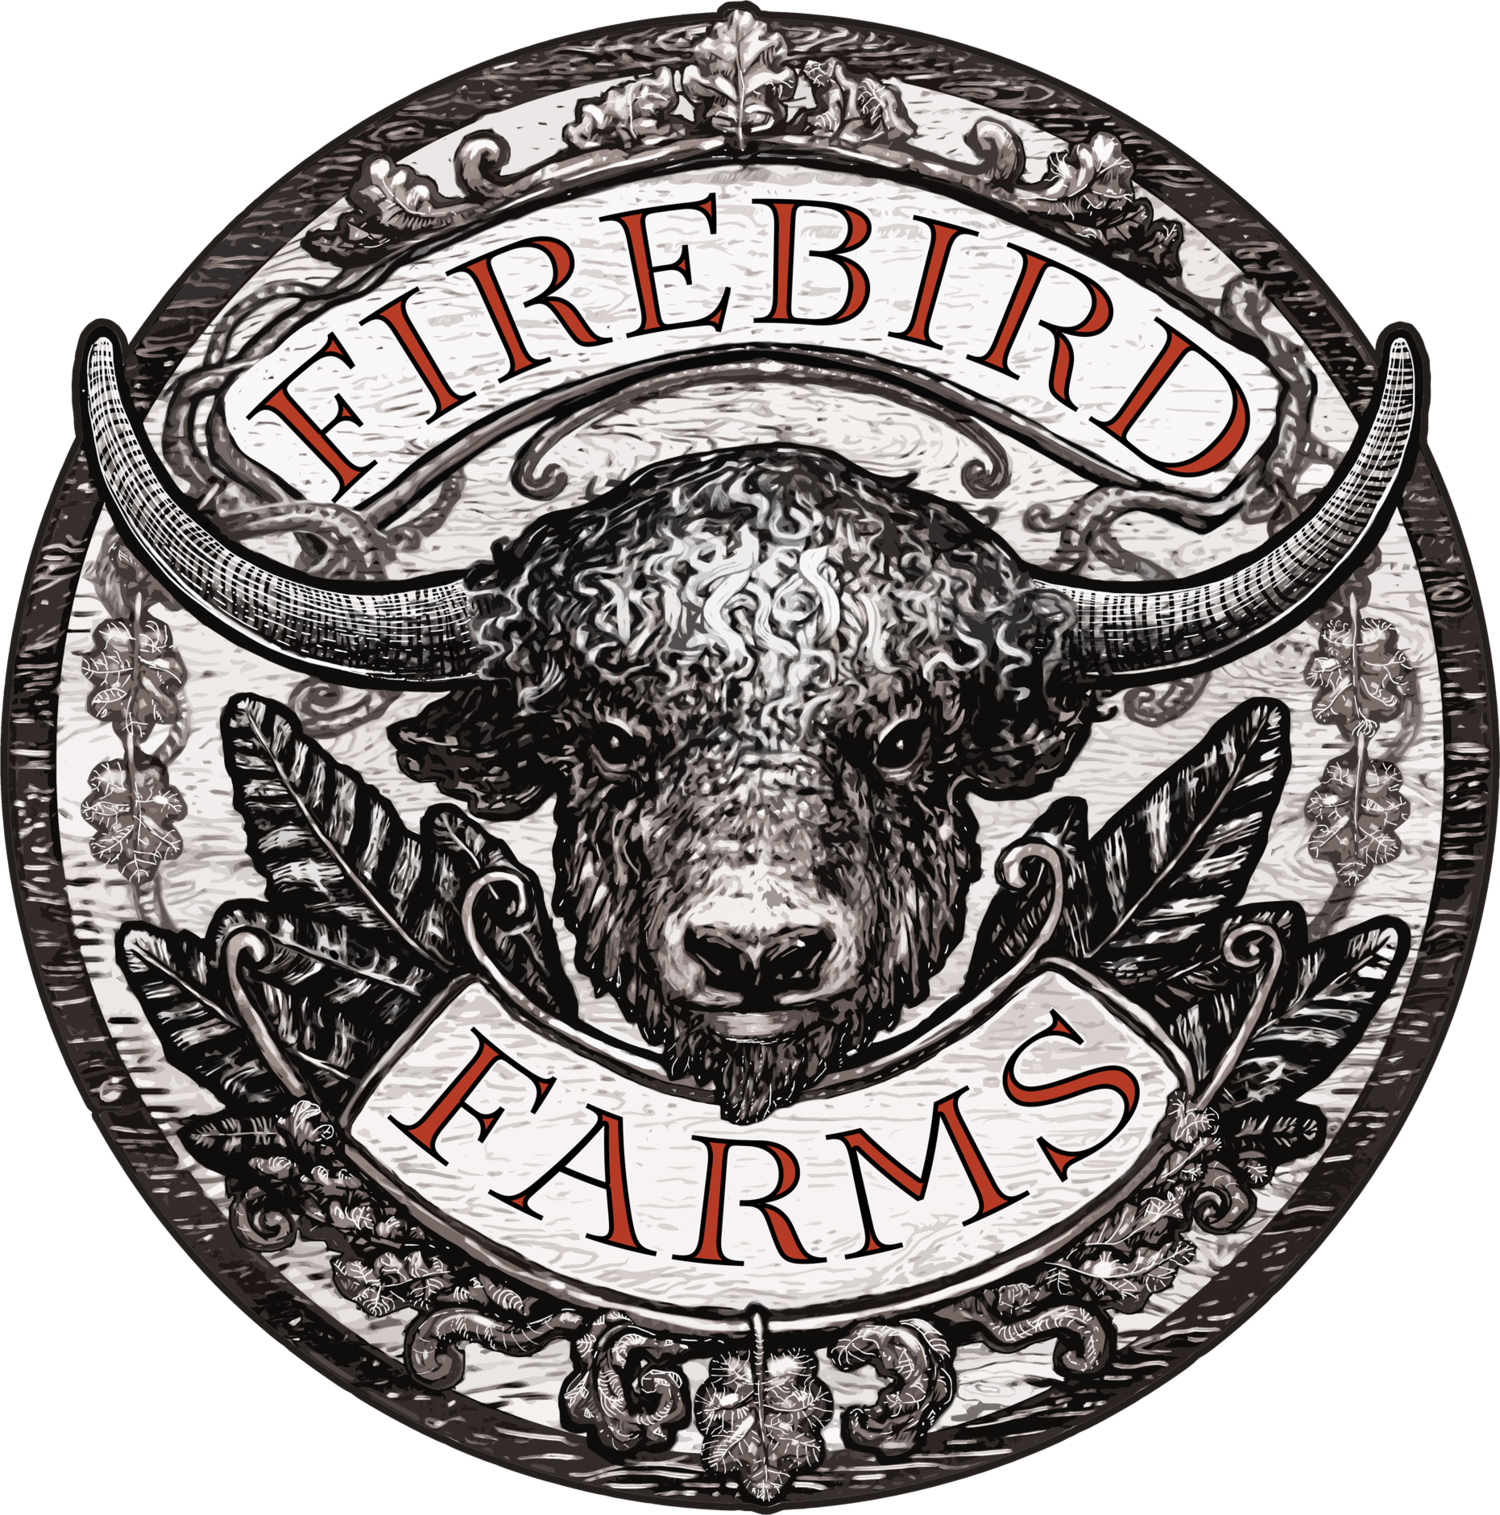 Firebird Farms